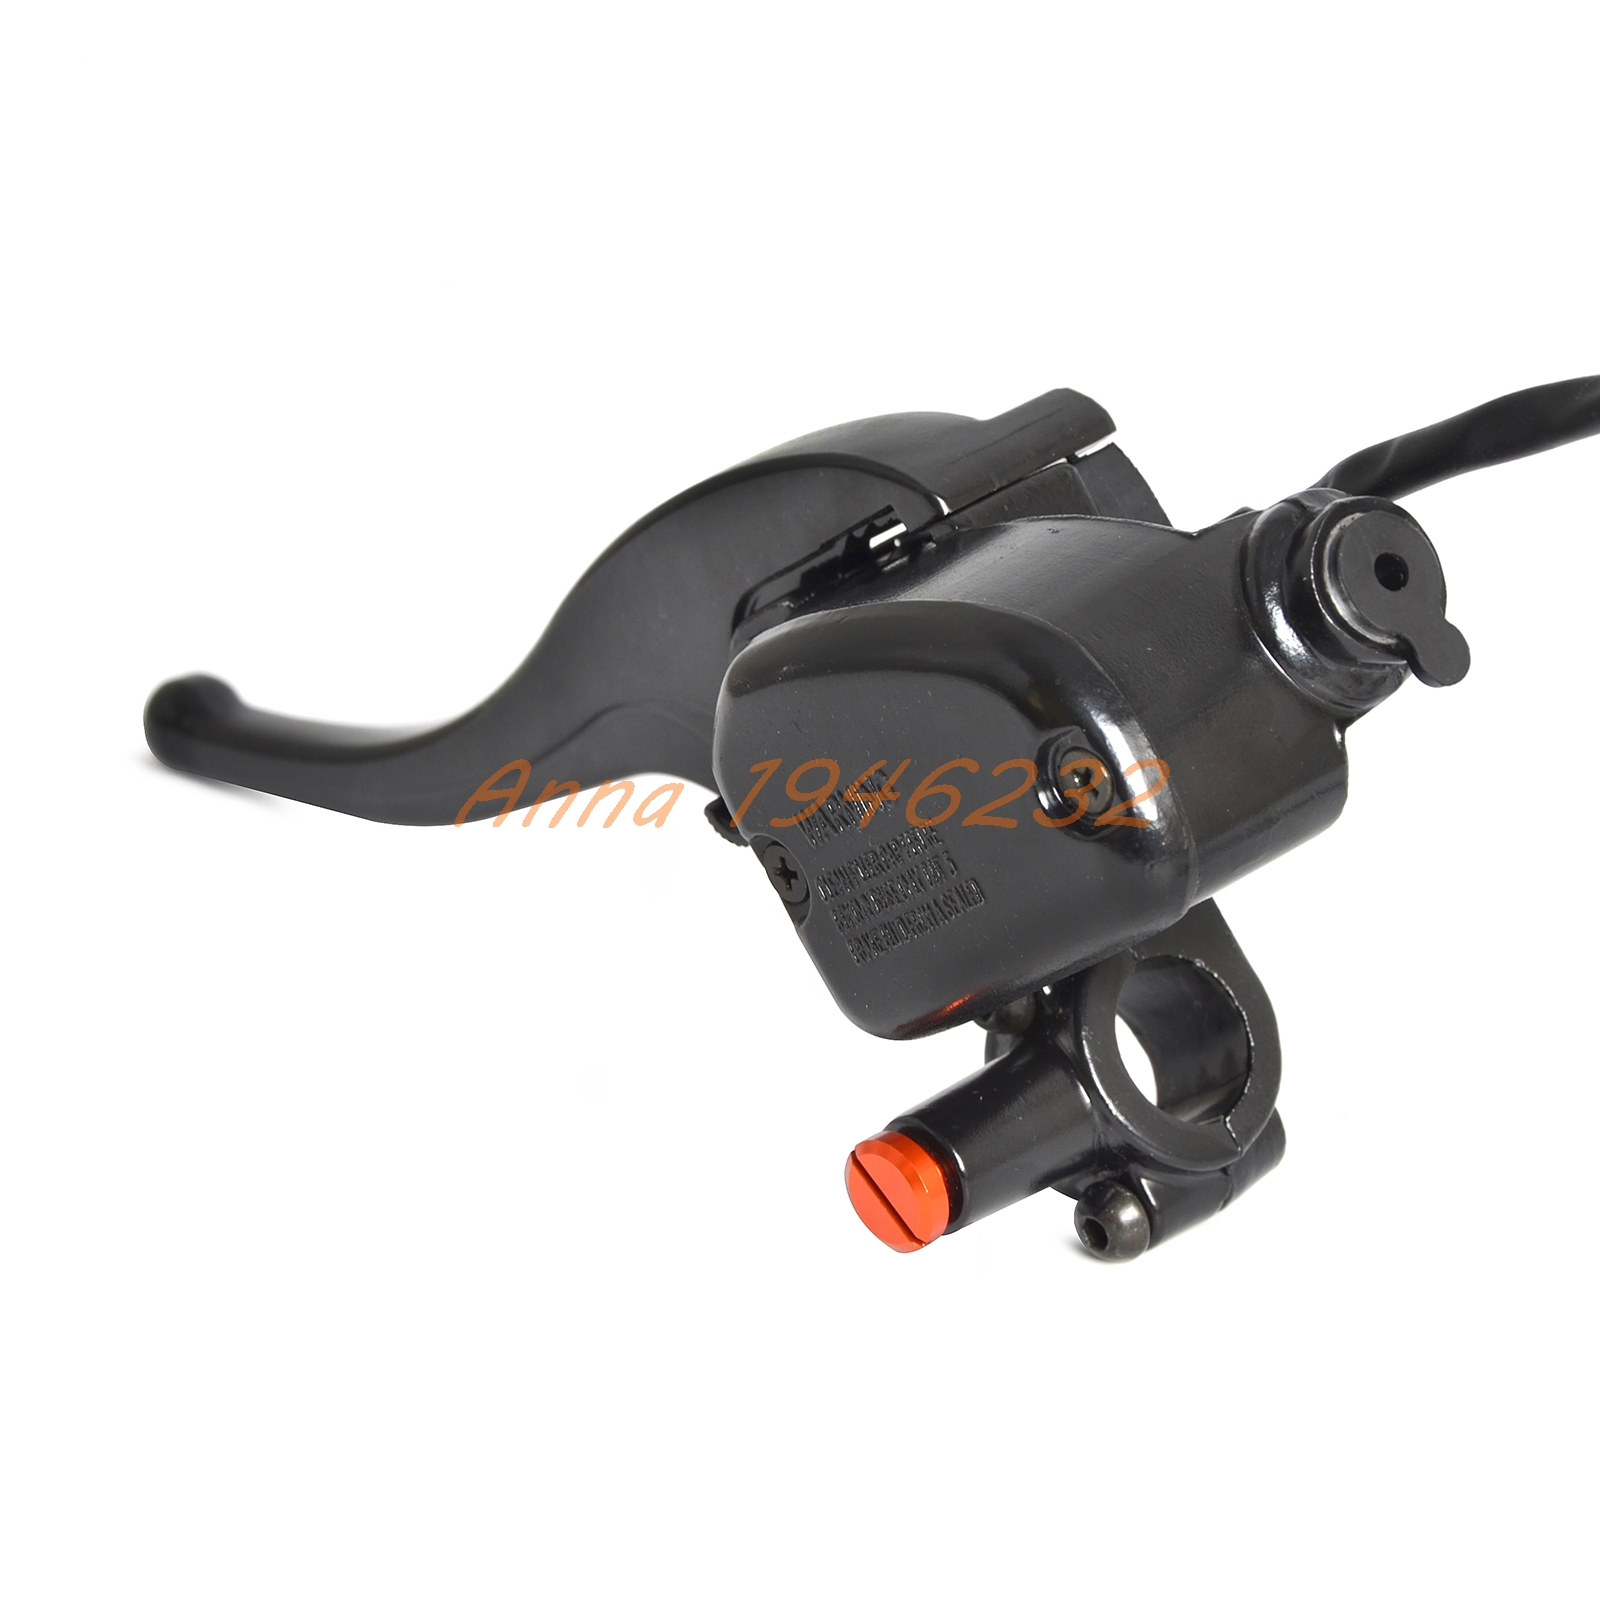 Left Hydraulic Brake Master Cylinder Lever Assembly For Palaris ATV UTV SCRAMBLER 500 TRAIL BLAZER 330 BOSS FOREST 800 редакция газеты наша версия наша версия 24 2015